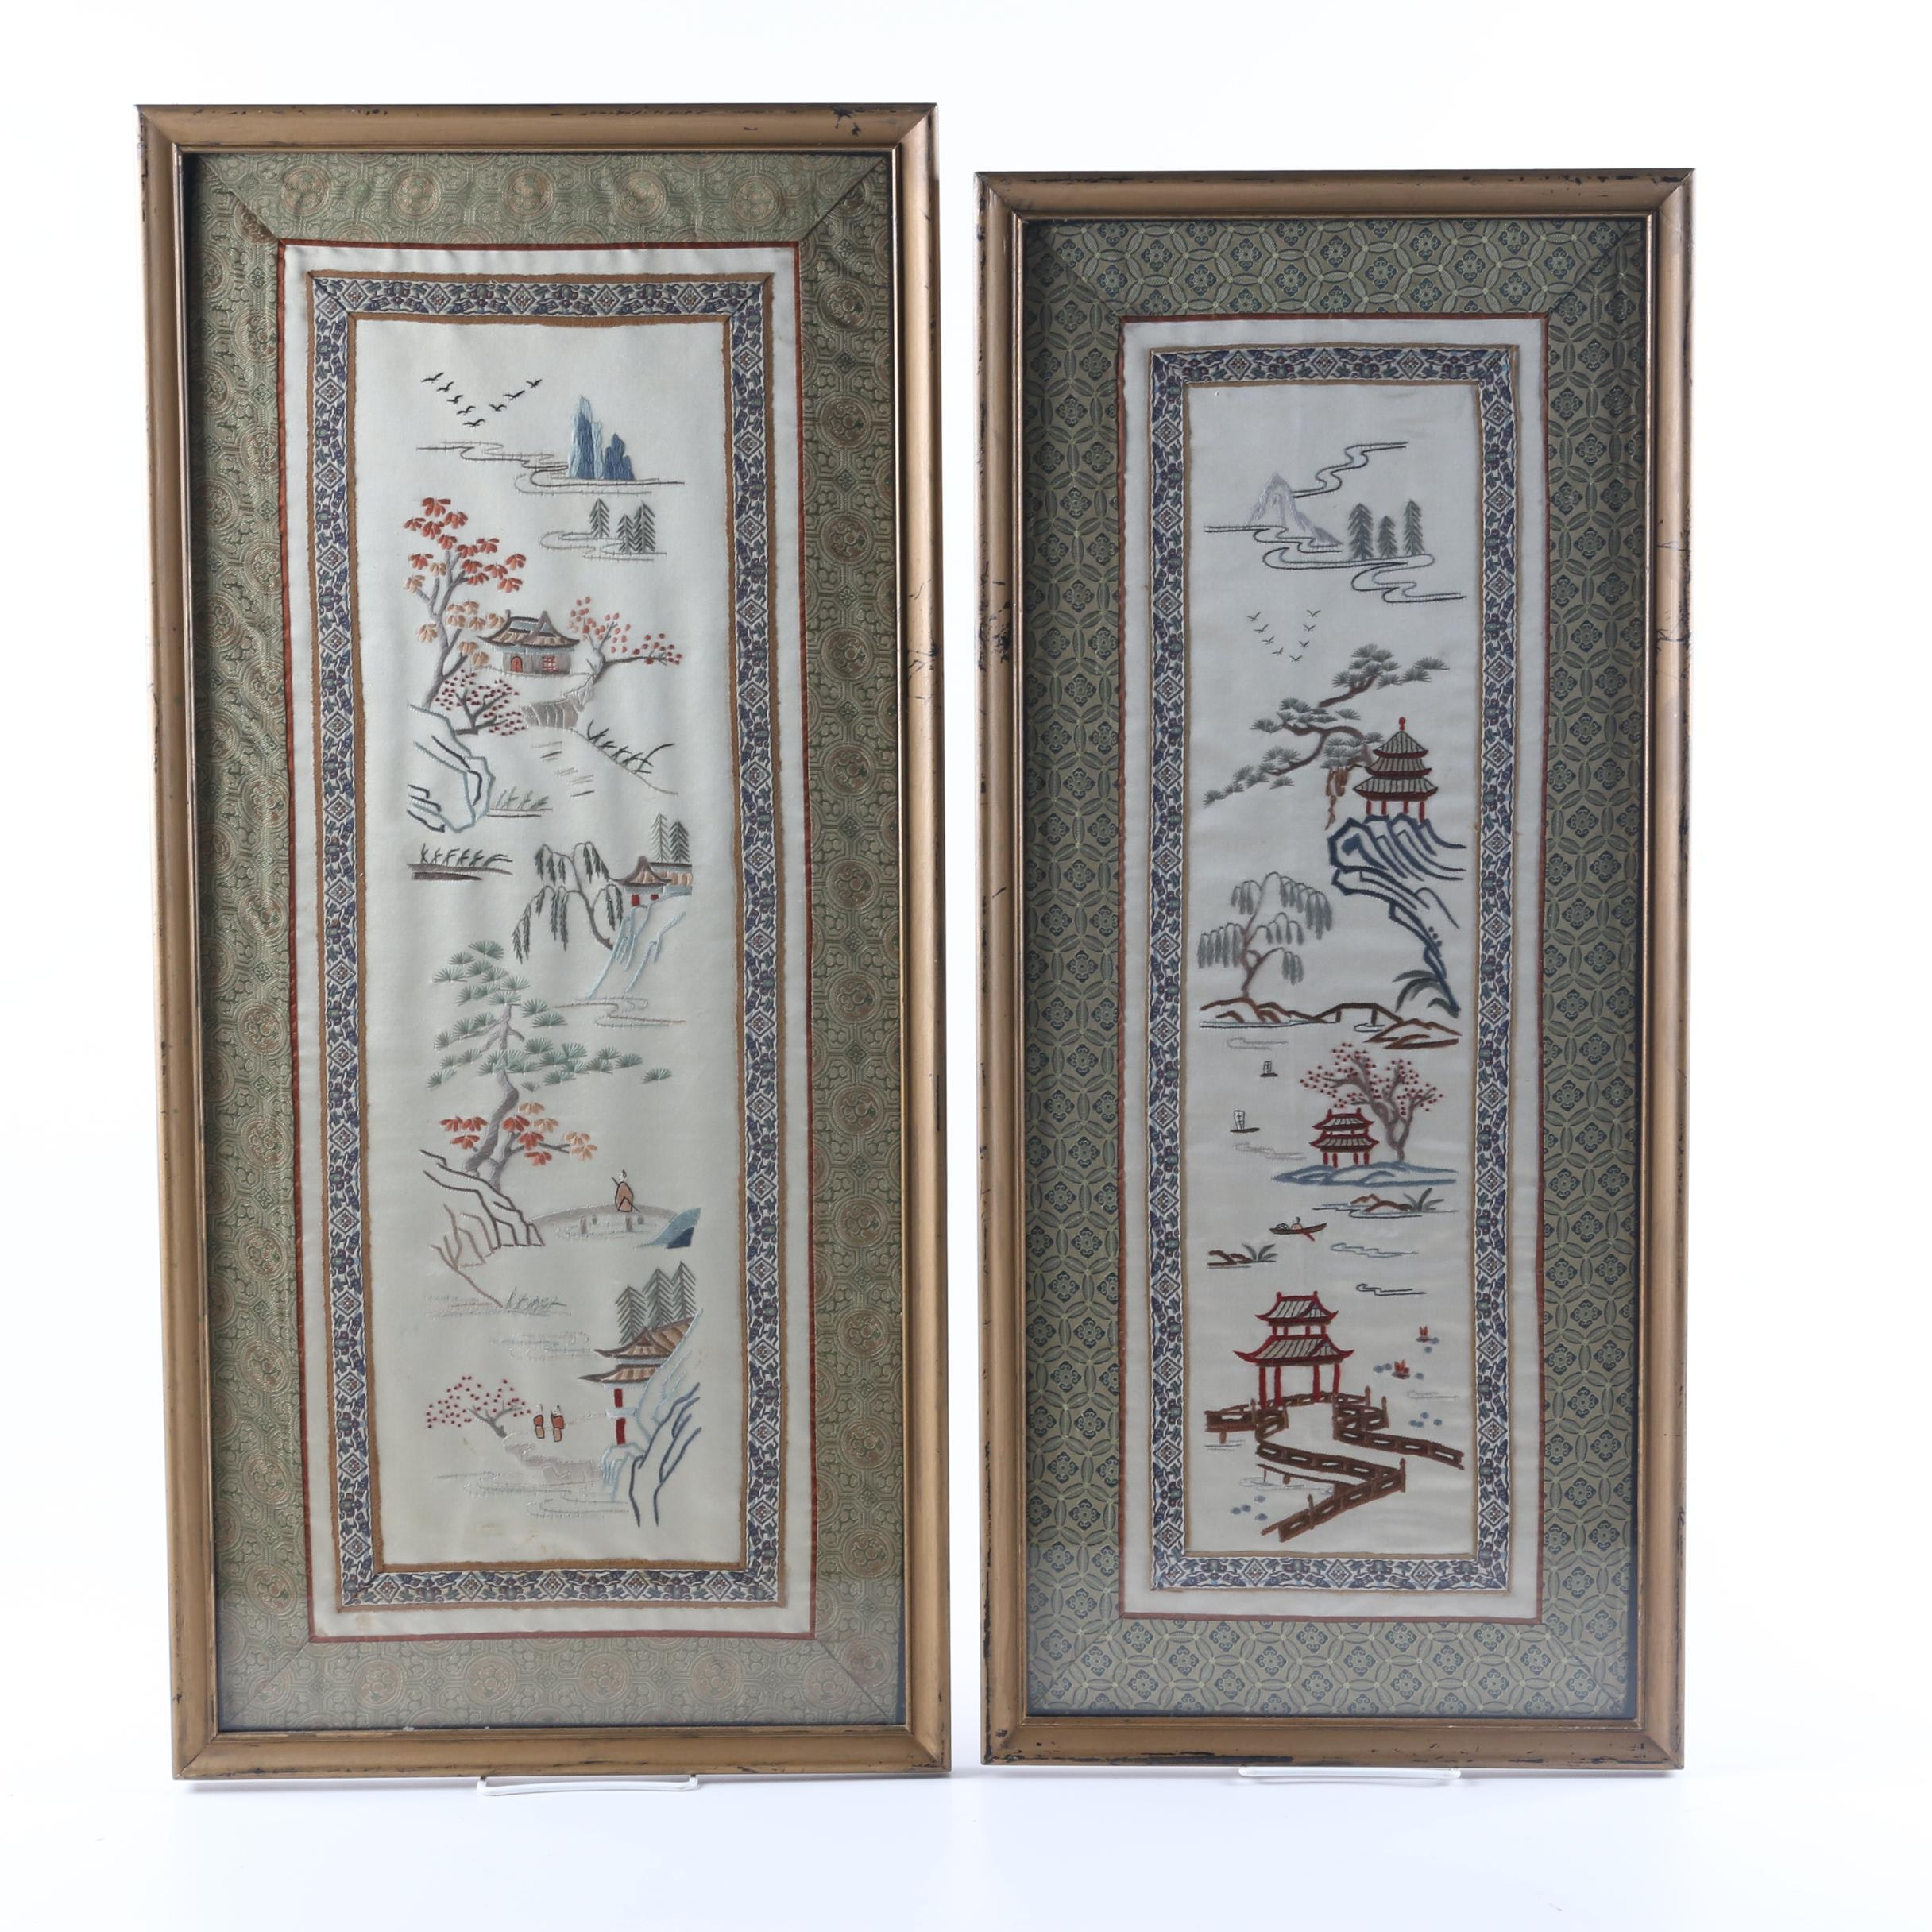 Vintage Asian Inspired Embroidered Silk Textile Art